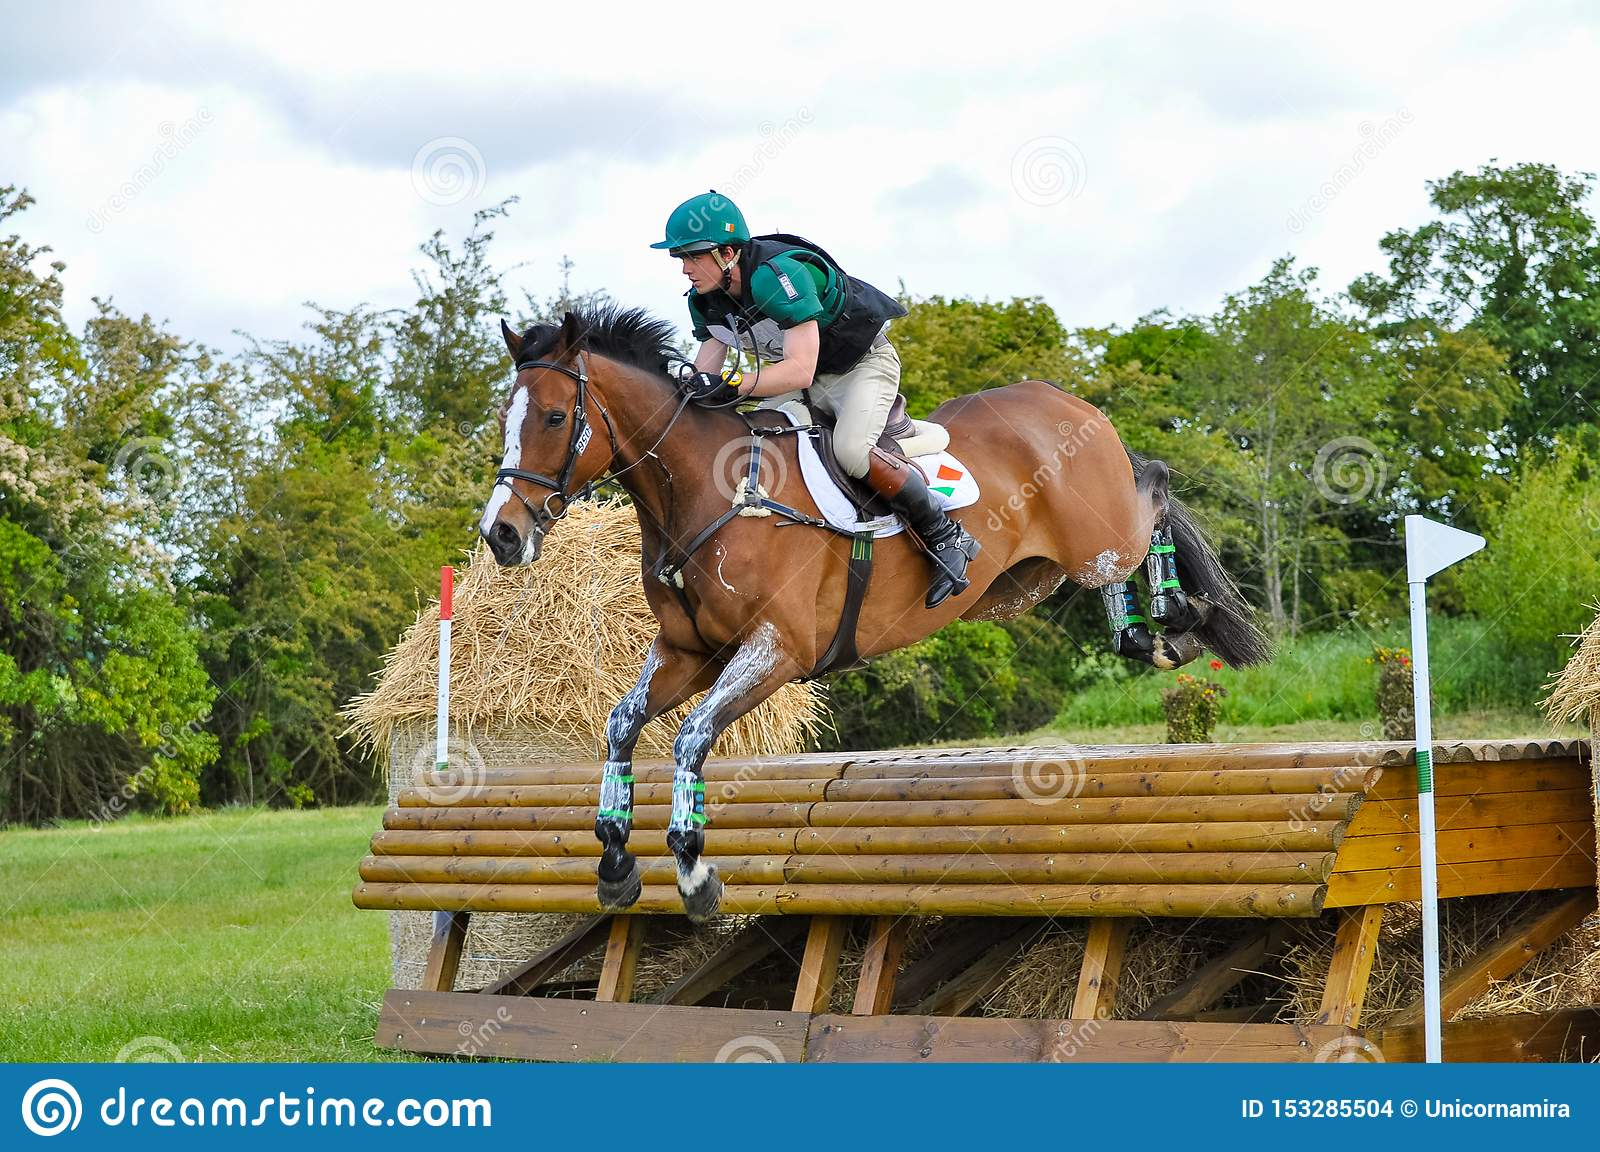 Tattersalls Horse Show In Ireland Brown Chestnut Horse Jumping Over Obstacle With Male Rider Jockey Editorial Stock Image Image Of Training Horse 153285504